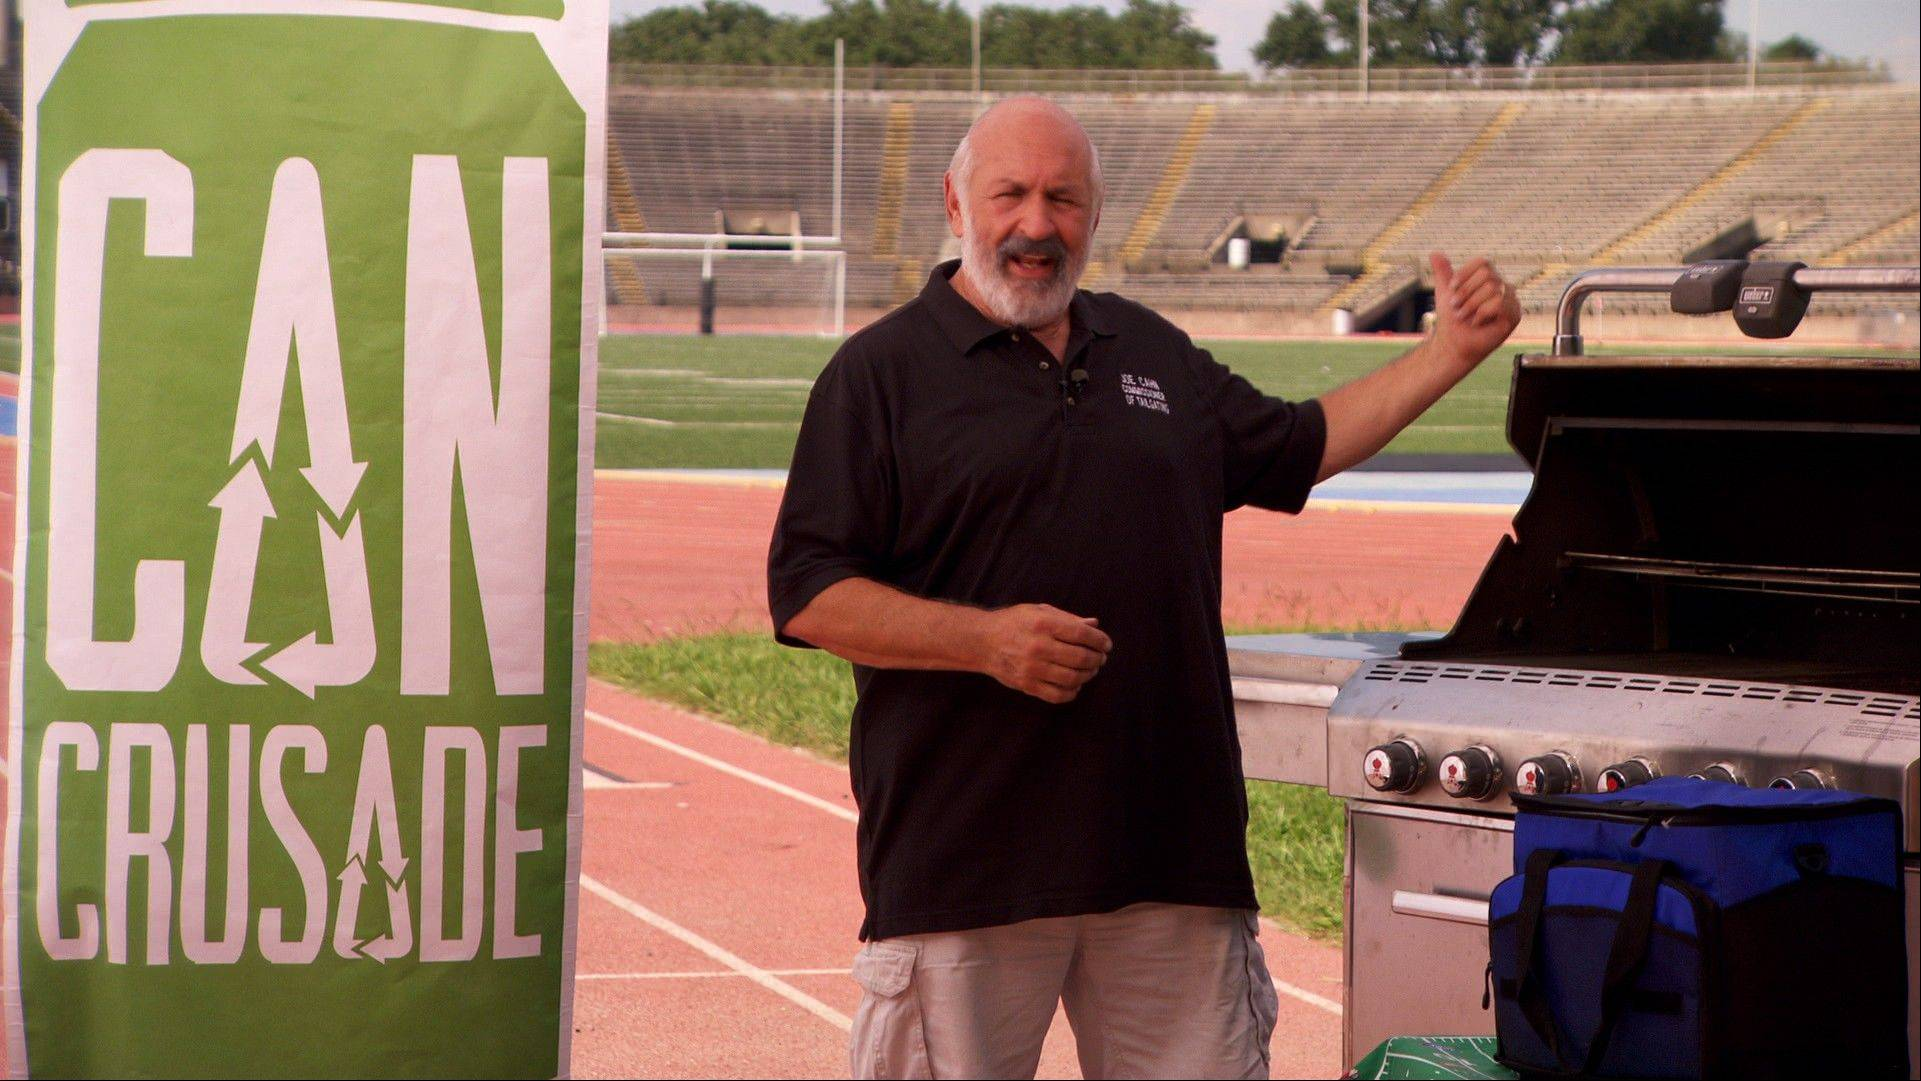 Line your grill with foil for easy clean-up and choose drinks in aluminum cans for quick chilling, says Joe Cahn, the Commissioner of Tailgating.